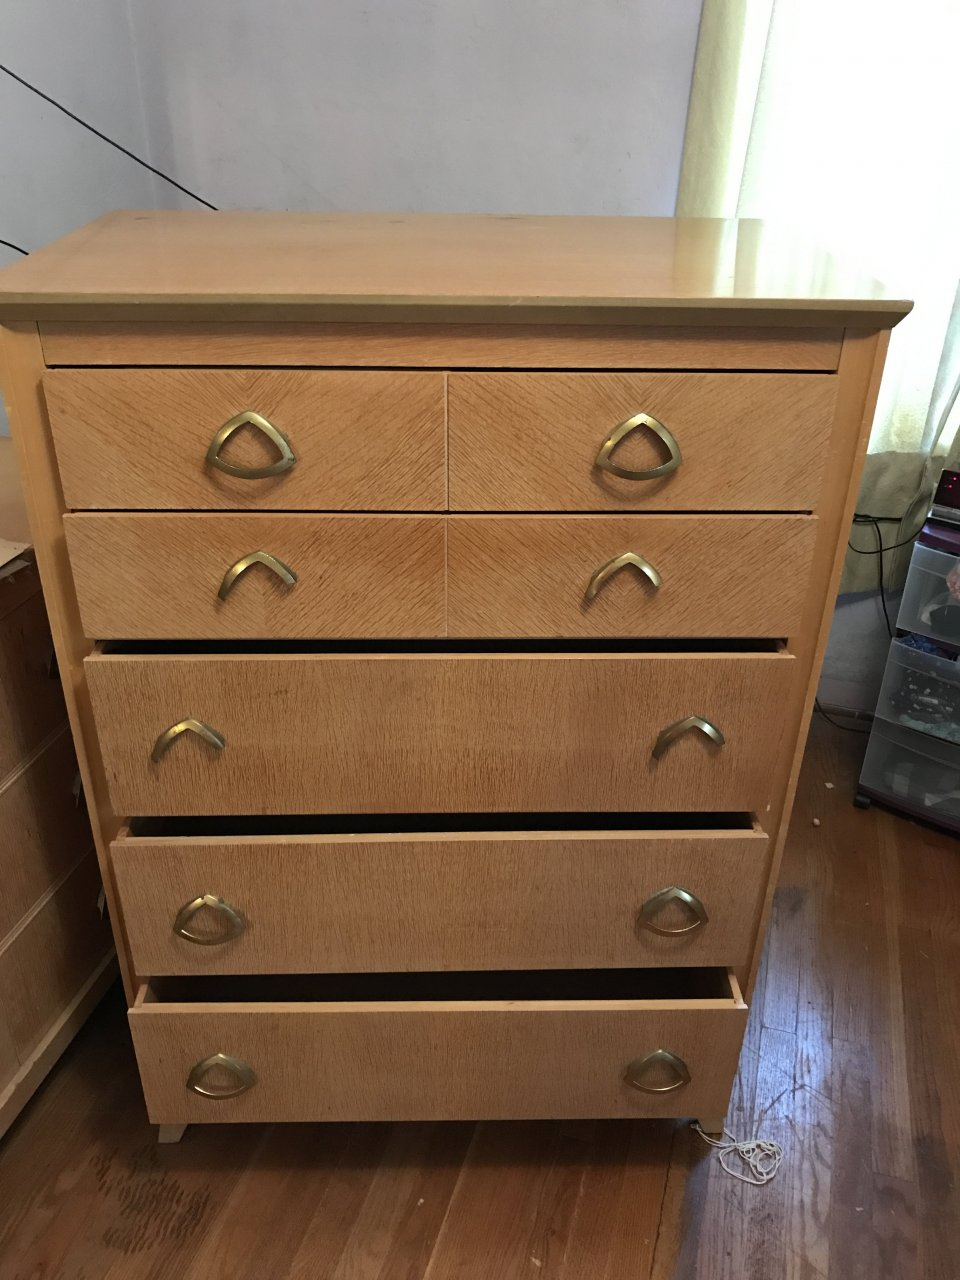 1940's Bedroom Set. My Antique Furniture Collection